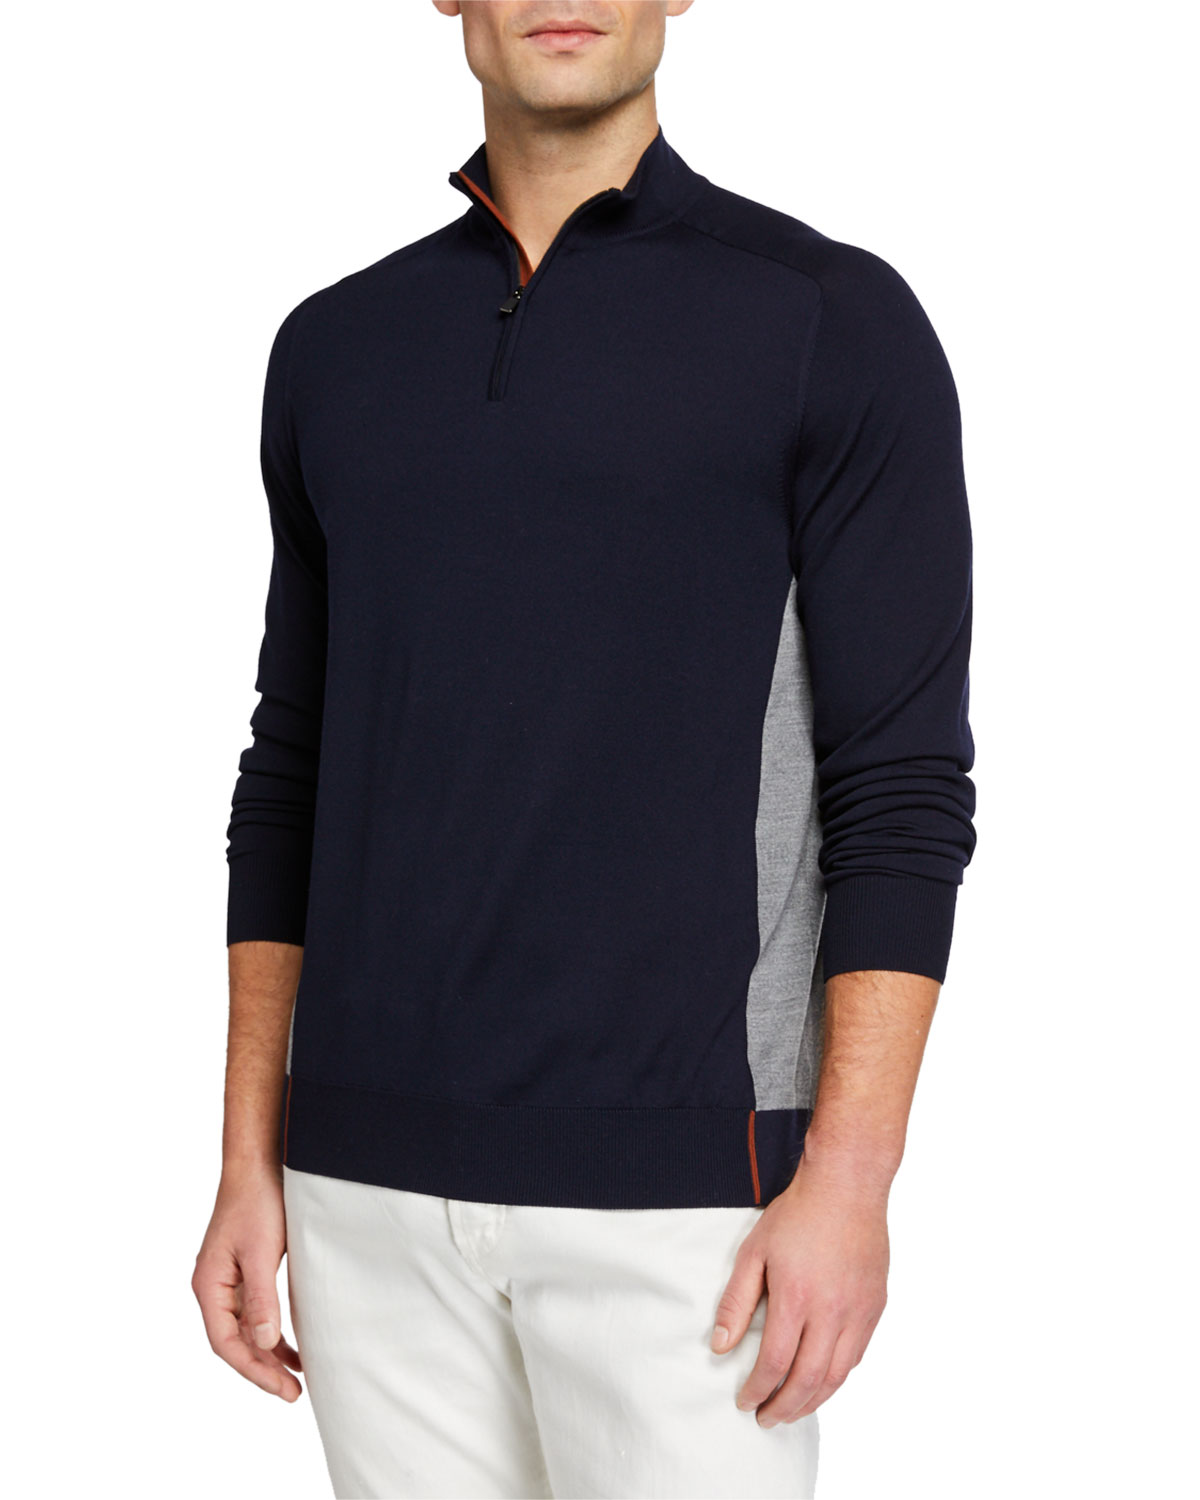 Loro Piana Sweaters MEN'S MATCHES ATHLETIC-INSPIRED SWEATER